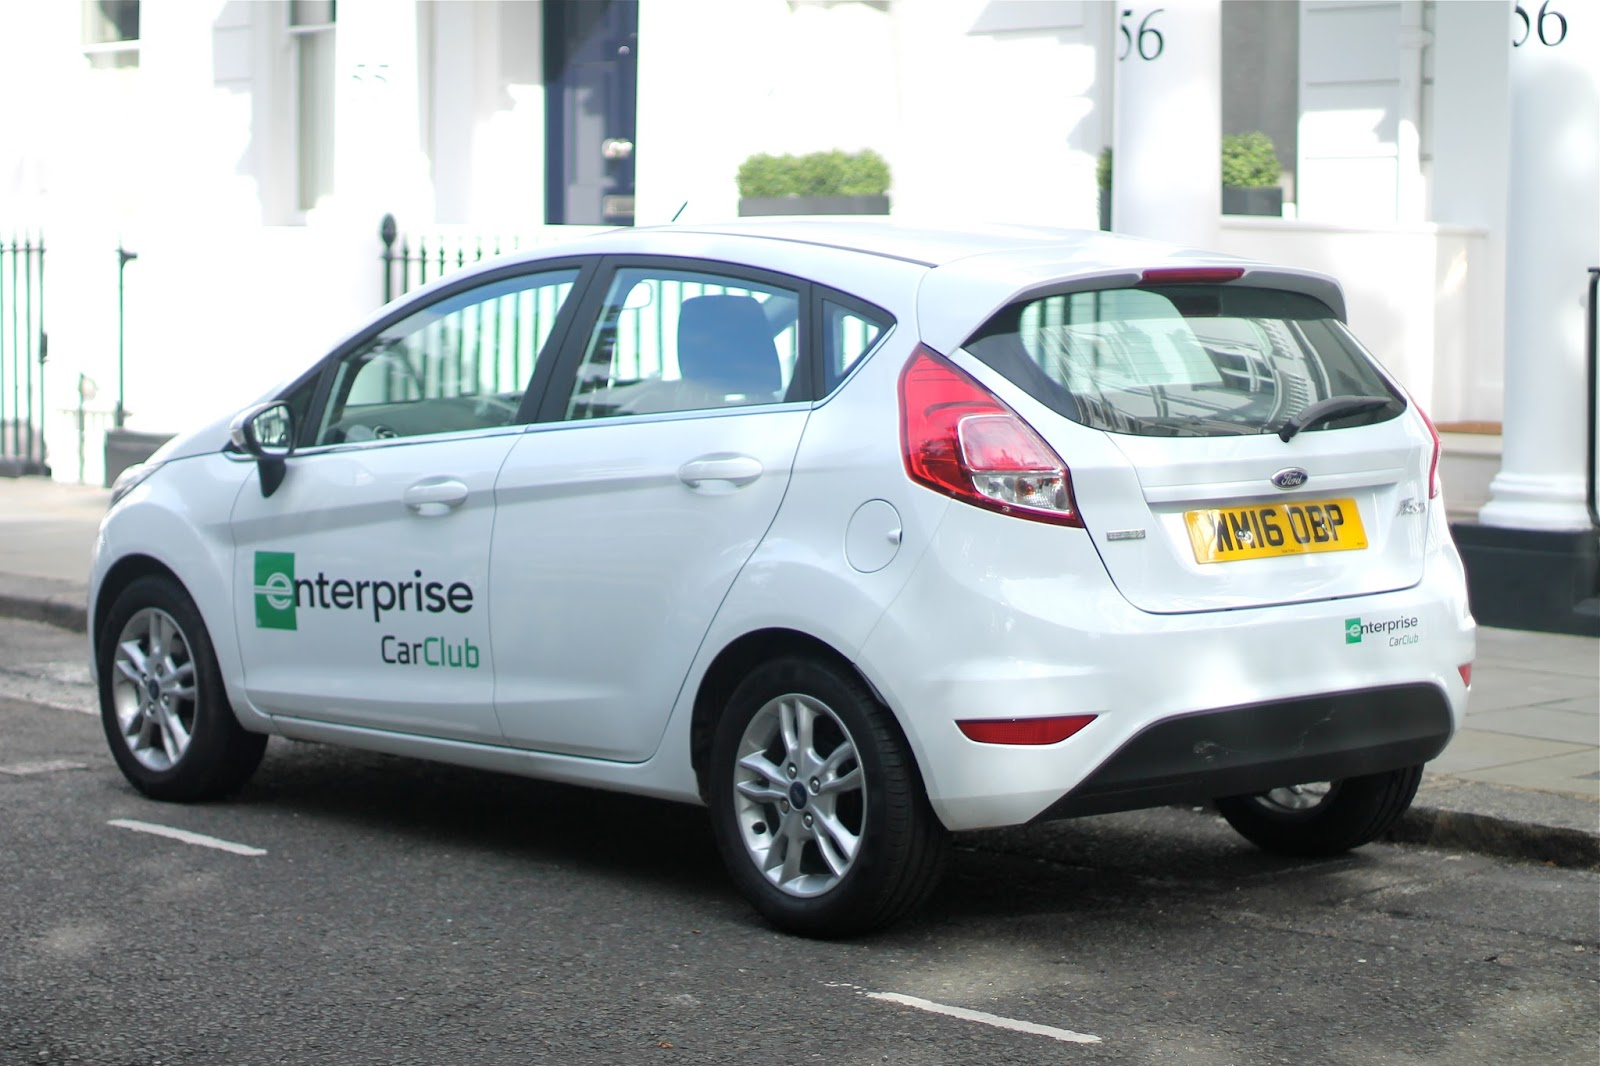 This Is Teral: Renting A Car With Enterprise Car Club